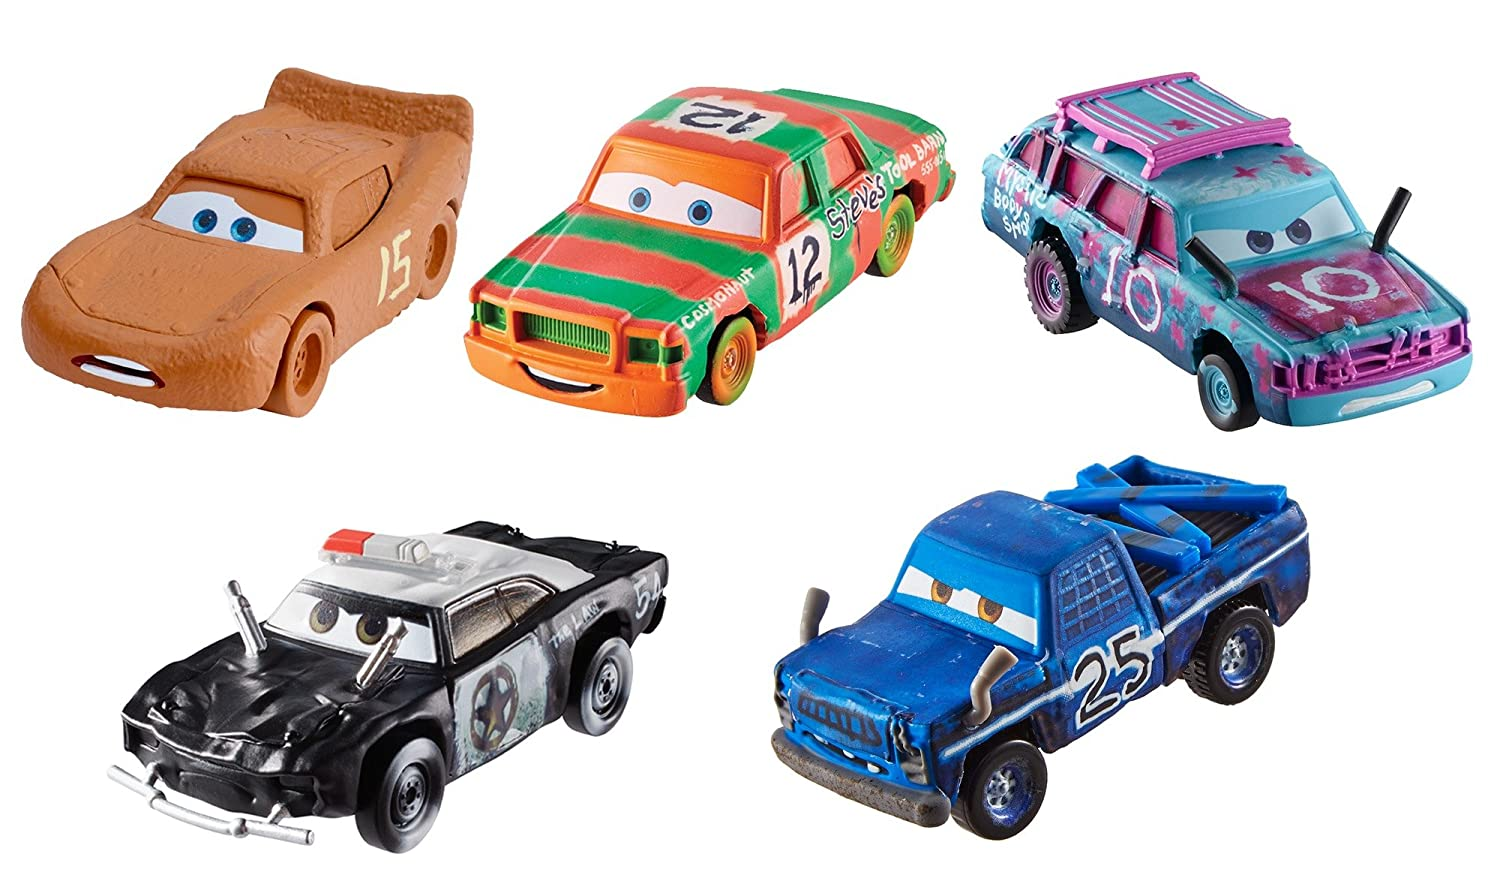 Disney/Pixar Cars Die-cast Vehicles, 5 Pack #2 Mattel FTX80